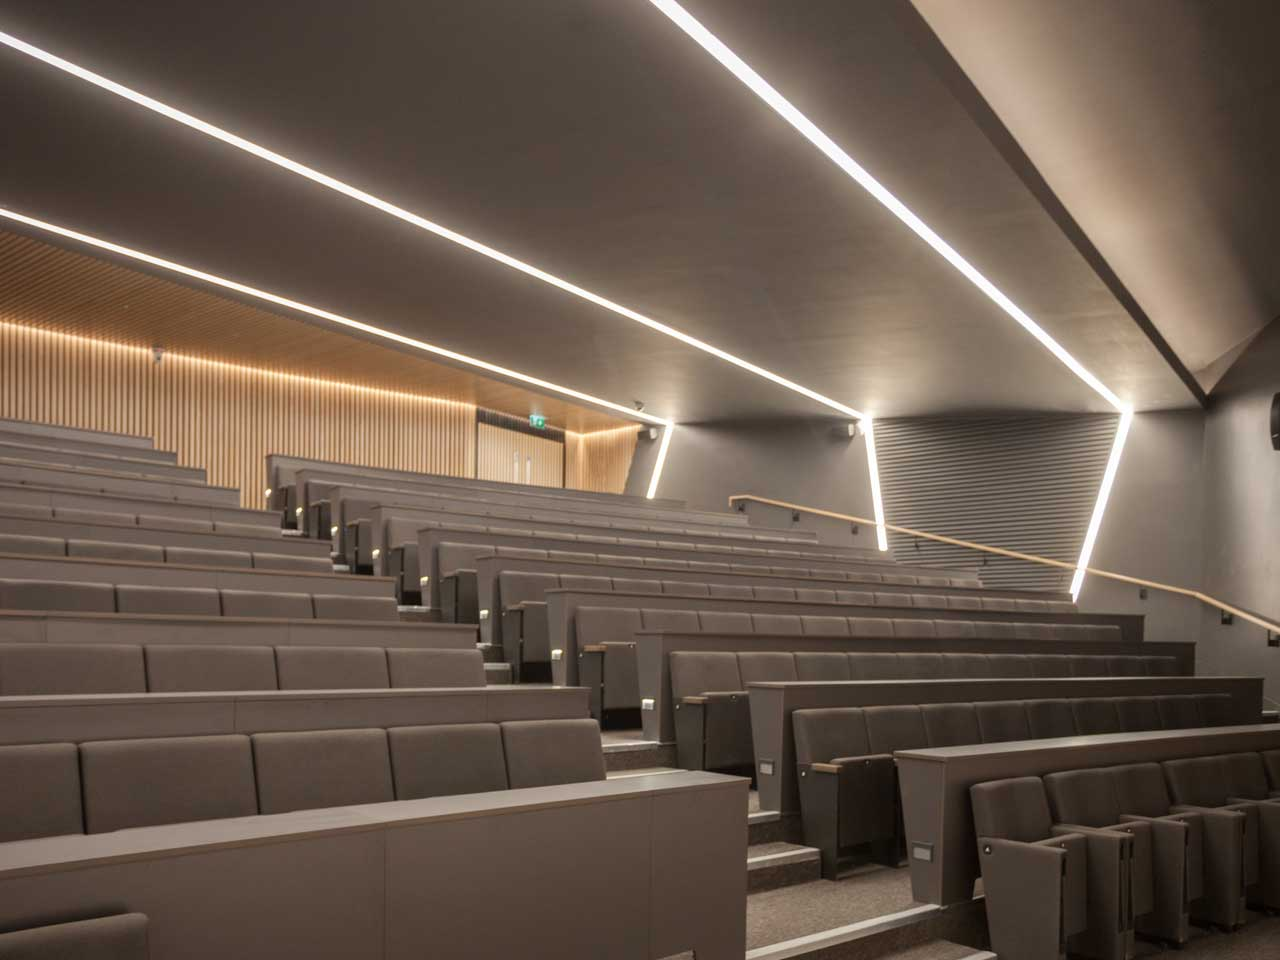 Three Regent Lighting profiles run the width of the auditorium